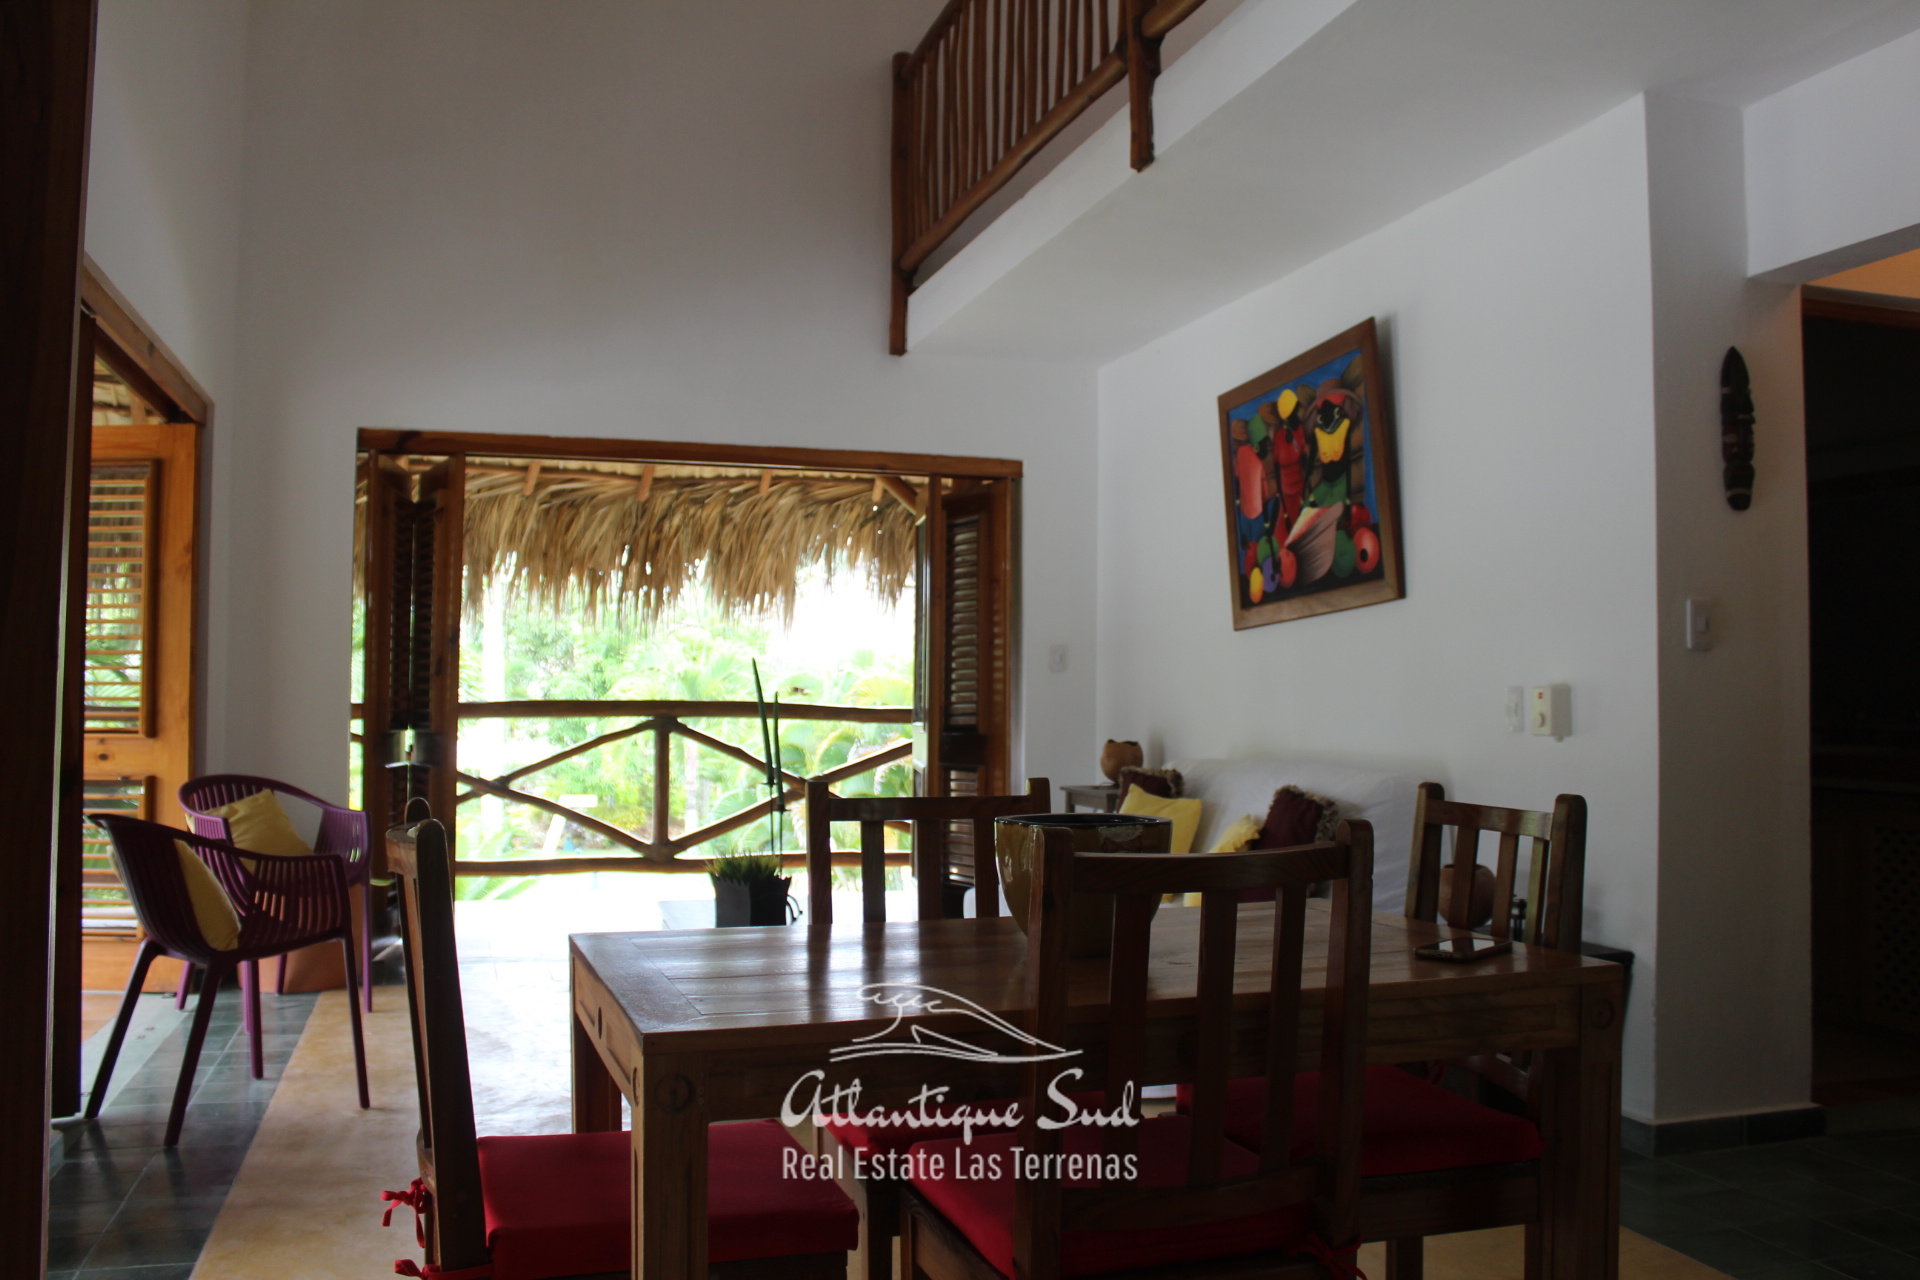 For-sale-Apartment-in-beachfront-community-with-mezzanine-Las-Terrenas_4798 (1).JPG